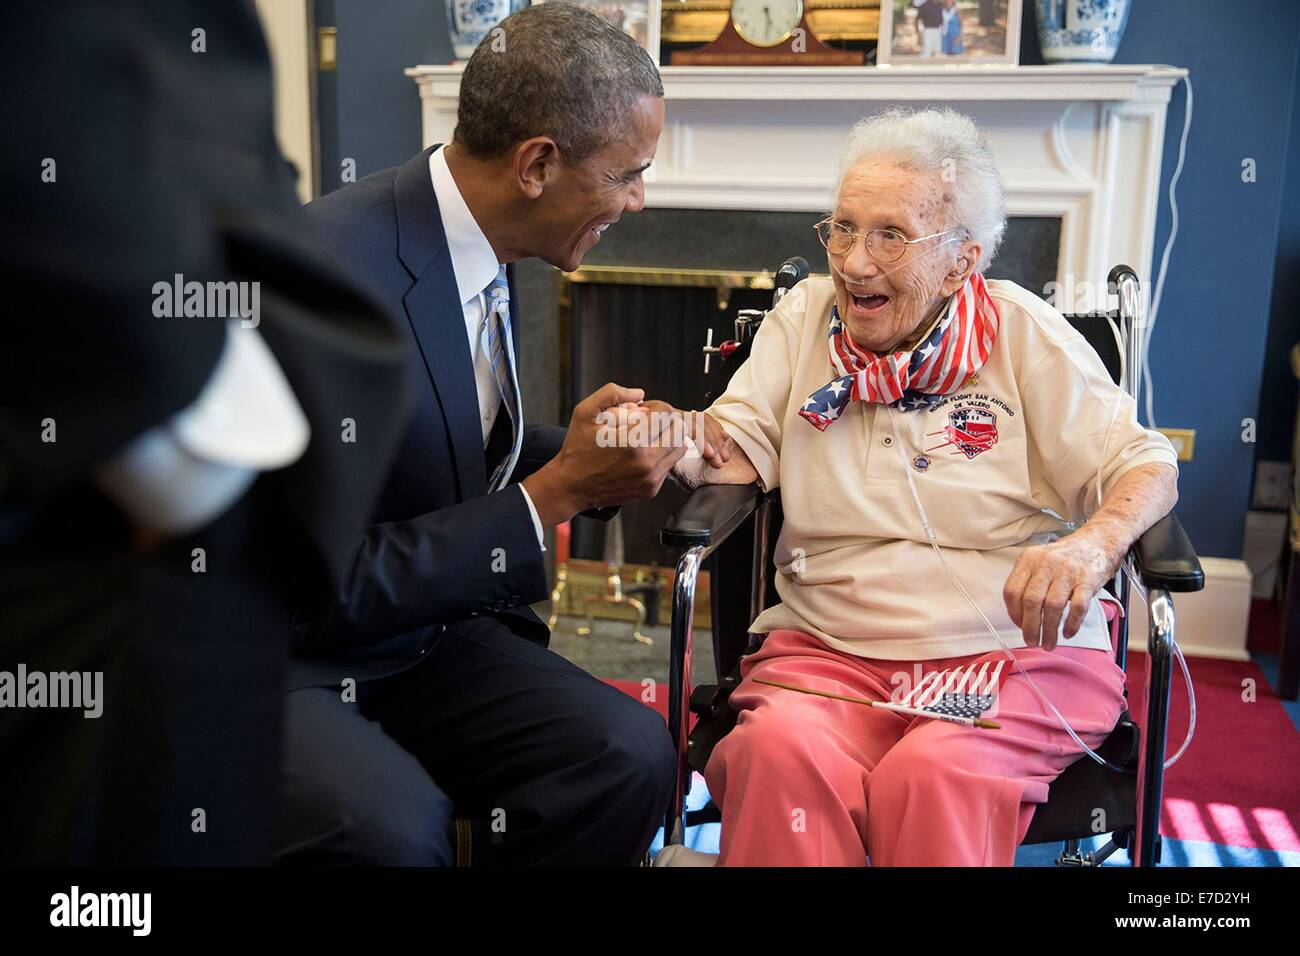 http://c7.alamy.com/comp/E7D2YH/us-president-barack-obama-visits-with-lucy-coffey-in-the-vice-presidents-E7D2YH.jpg